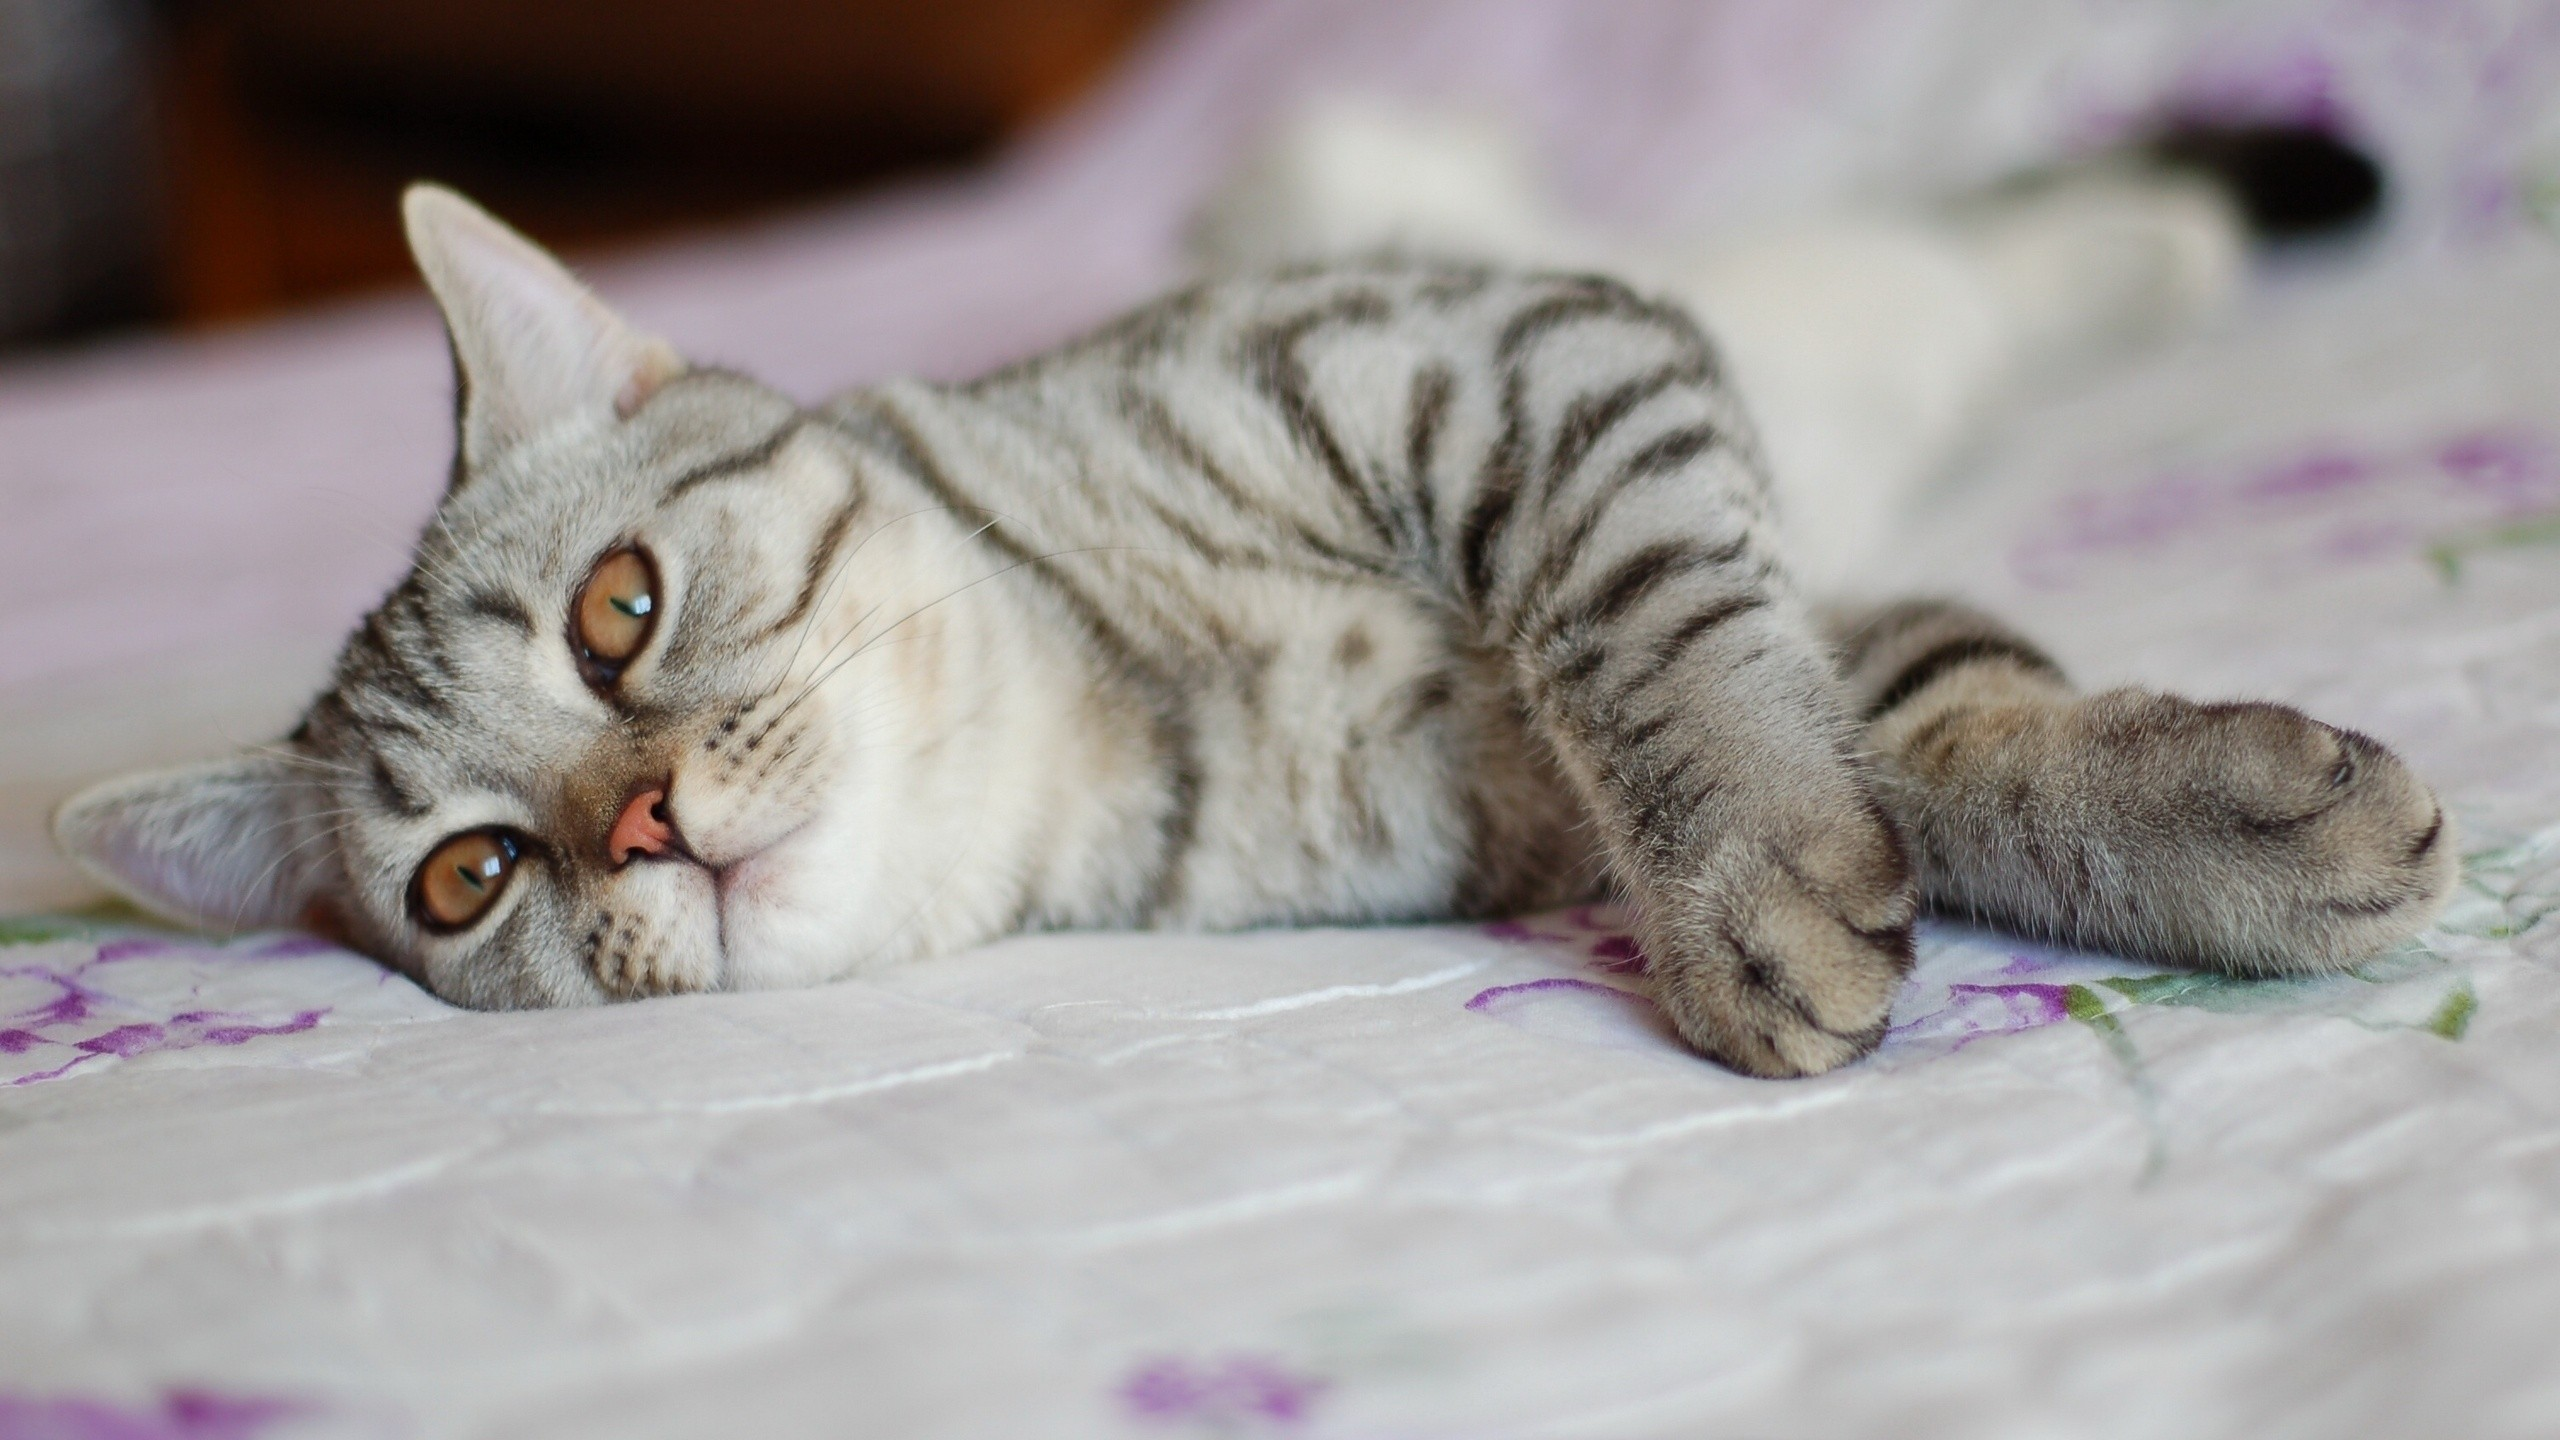 Gray cat with stripes